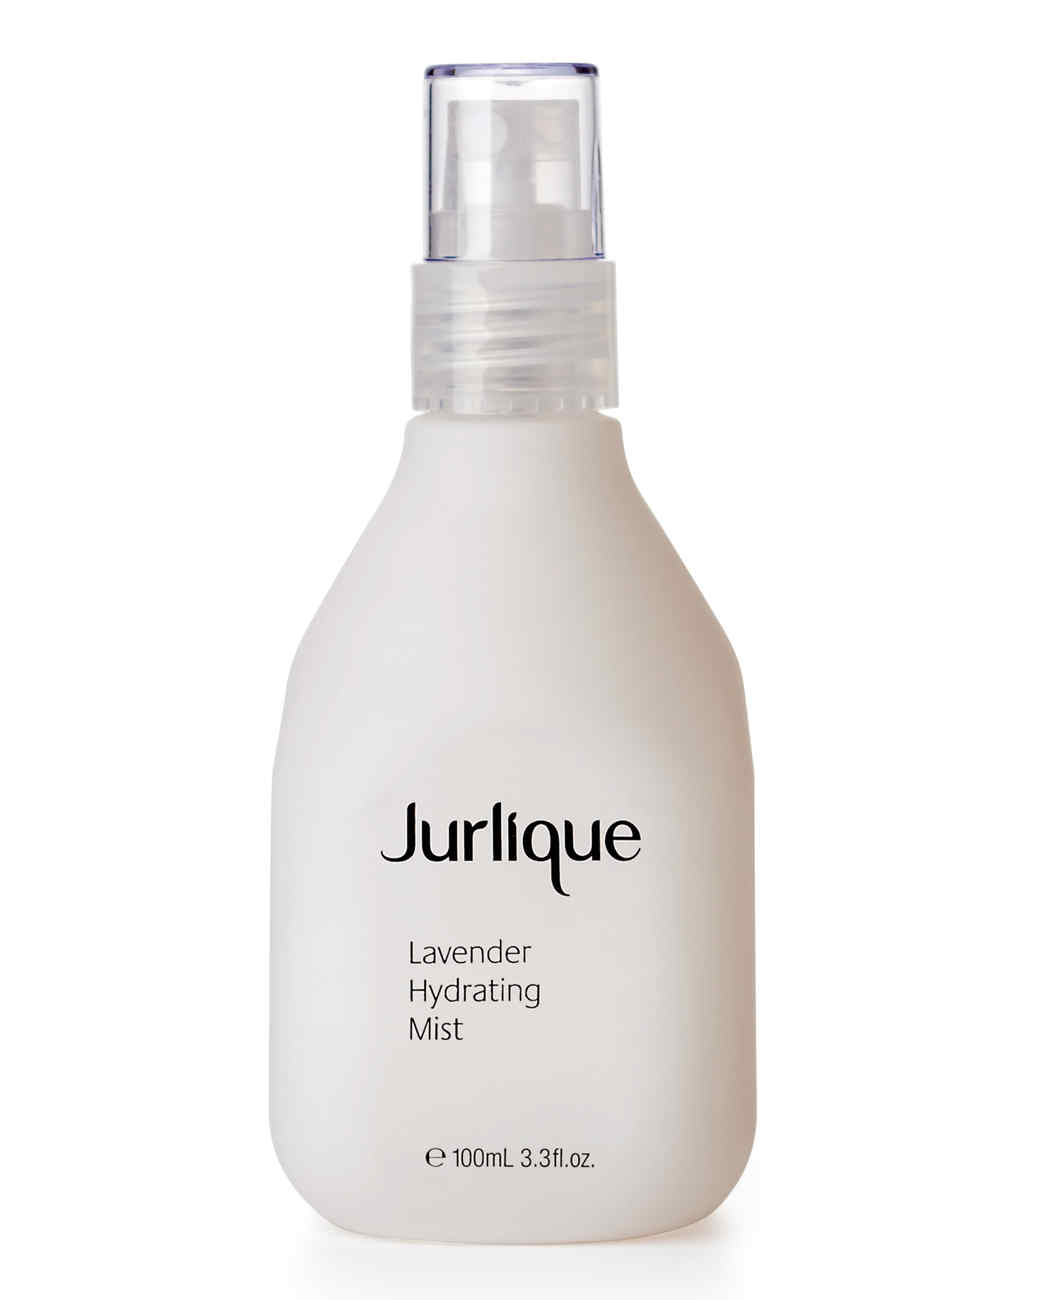 on-the-road-jurlique-lavender-hydrating-mist-mld108874-ld108874.jpg